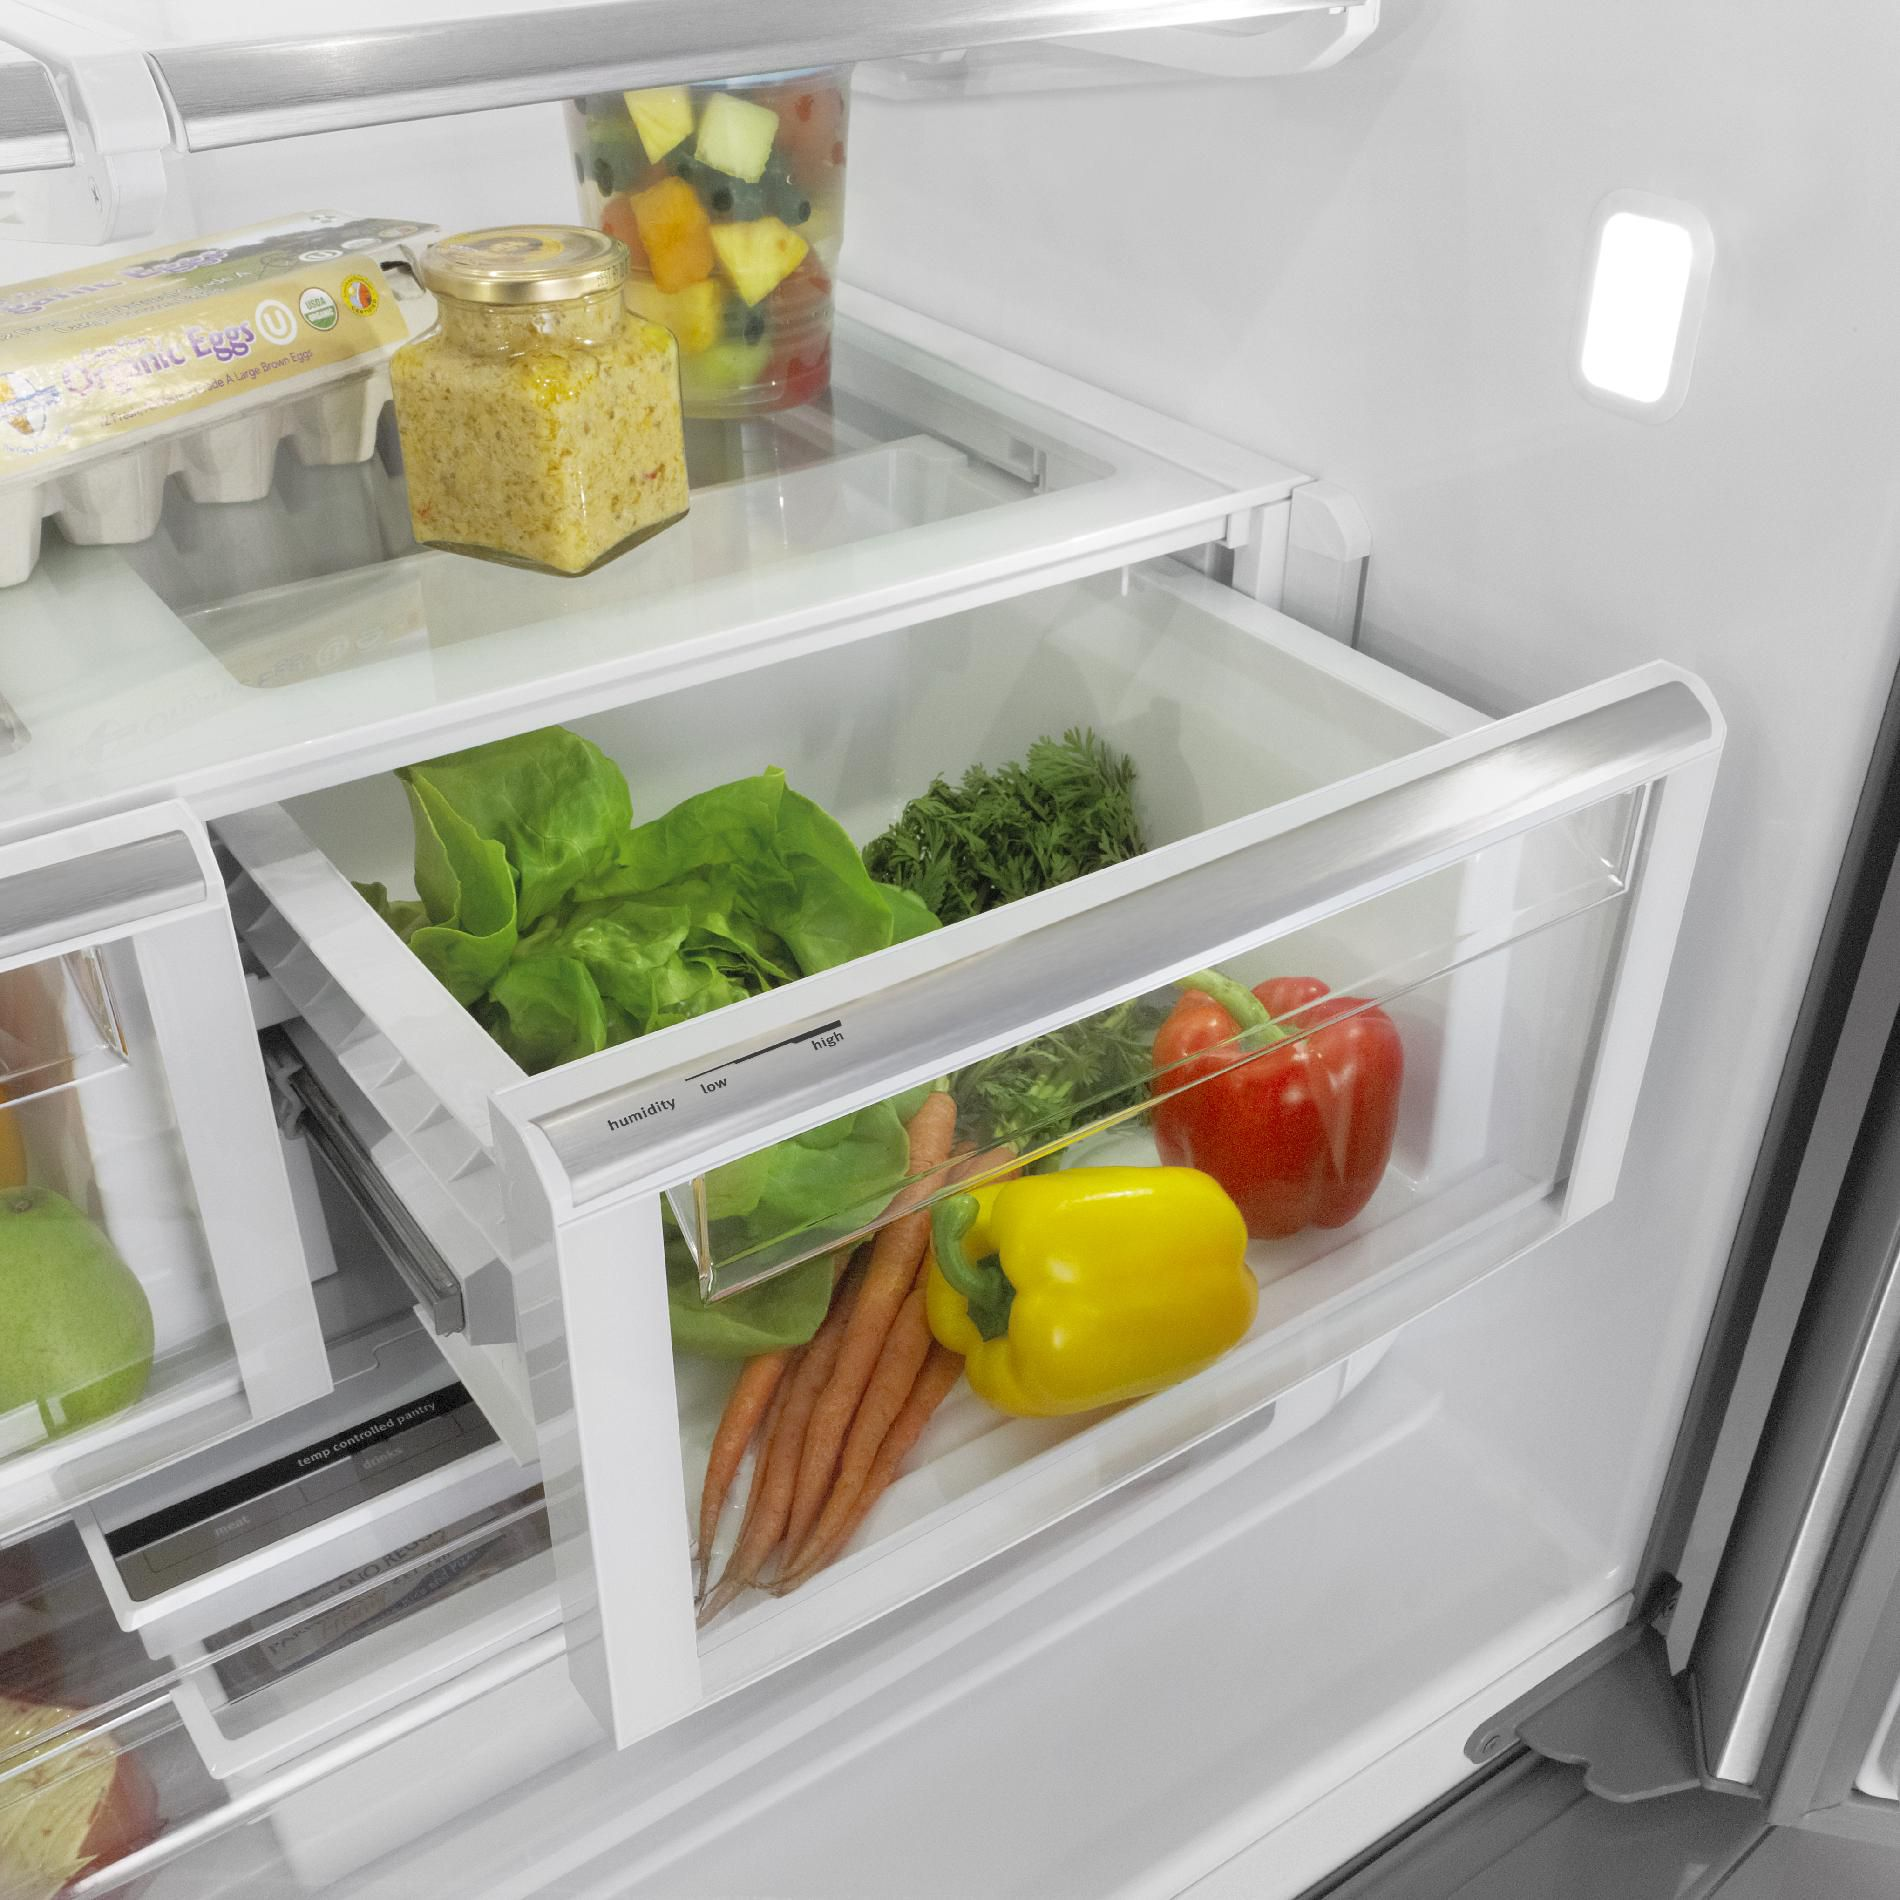 Maytag 29 cu. ft. French-Door Refrigerator w/ Cool Core™ Temperature Management - Stainless Steel